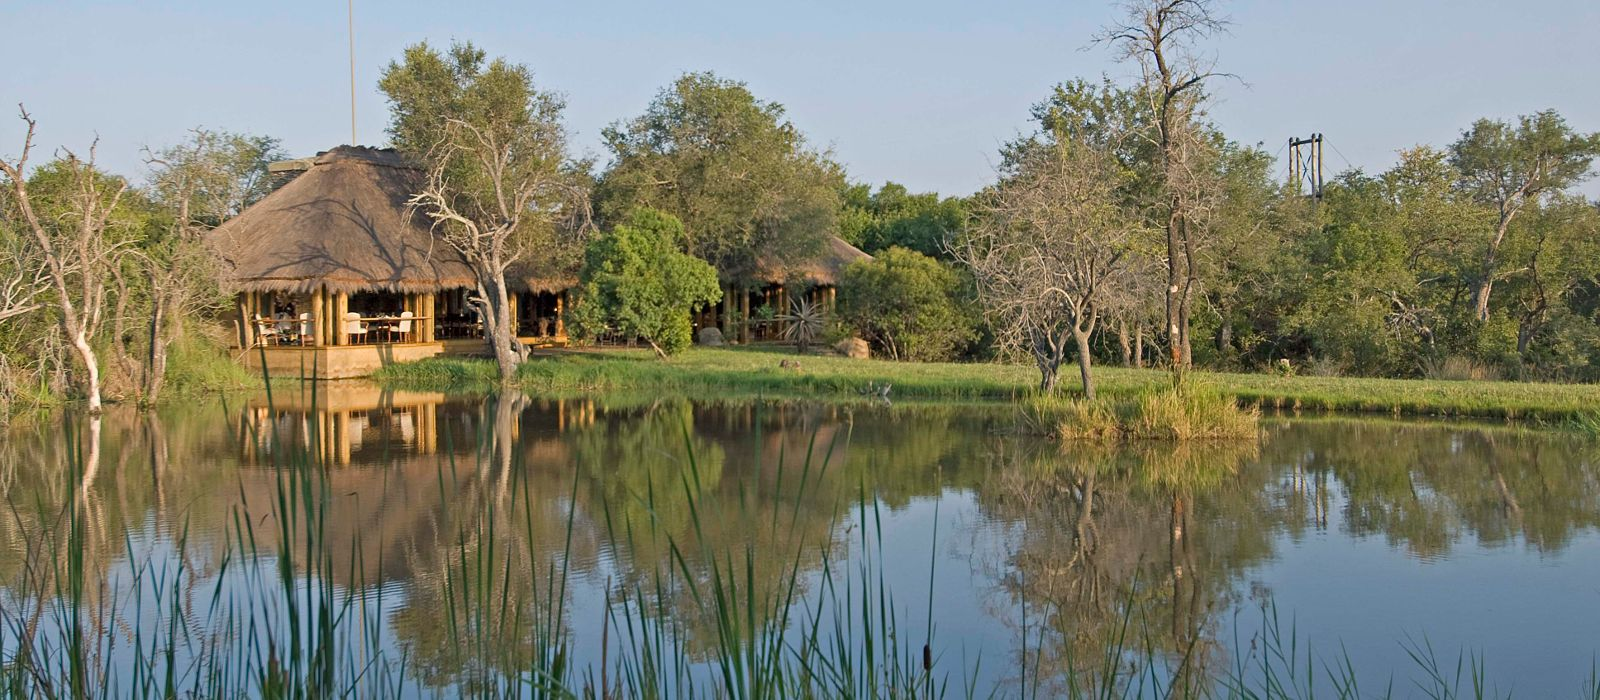 Hotel Camp Jabulani South Africa